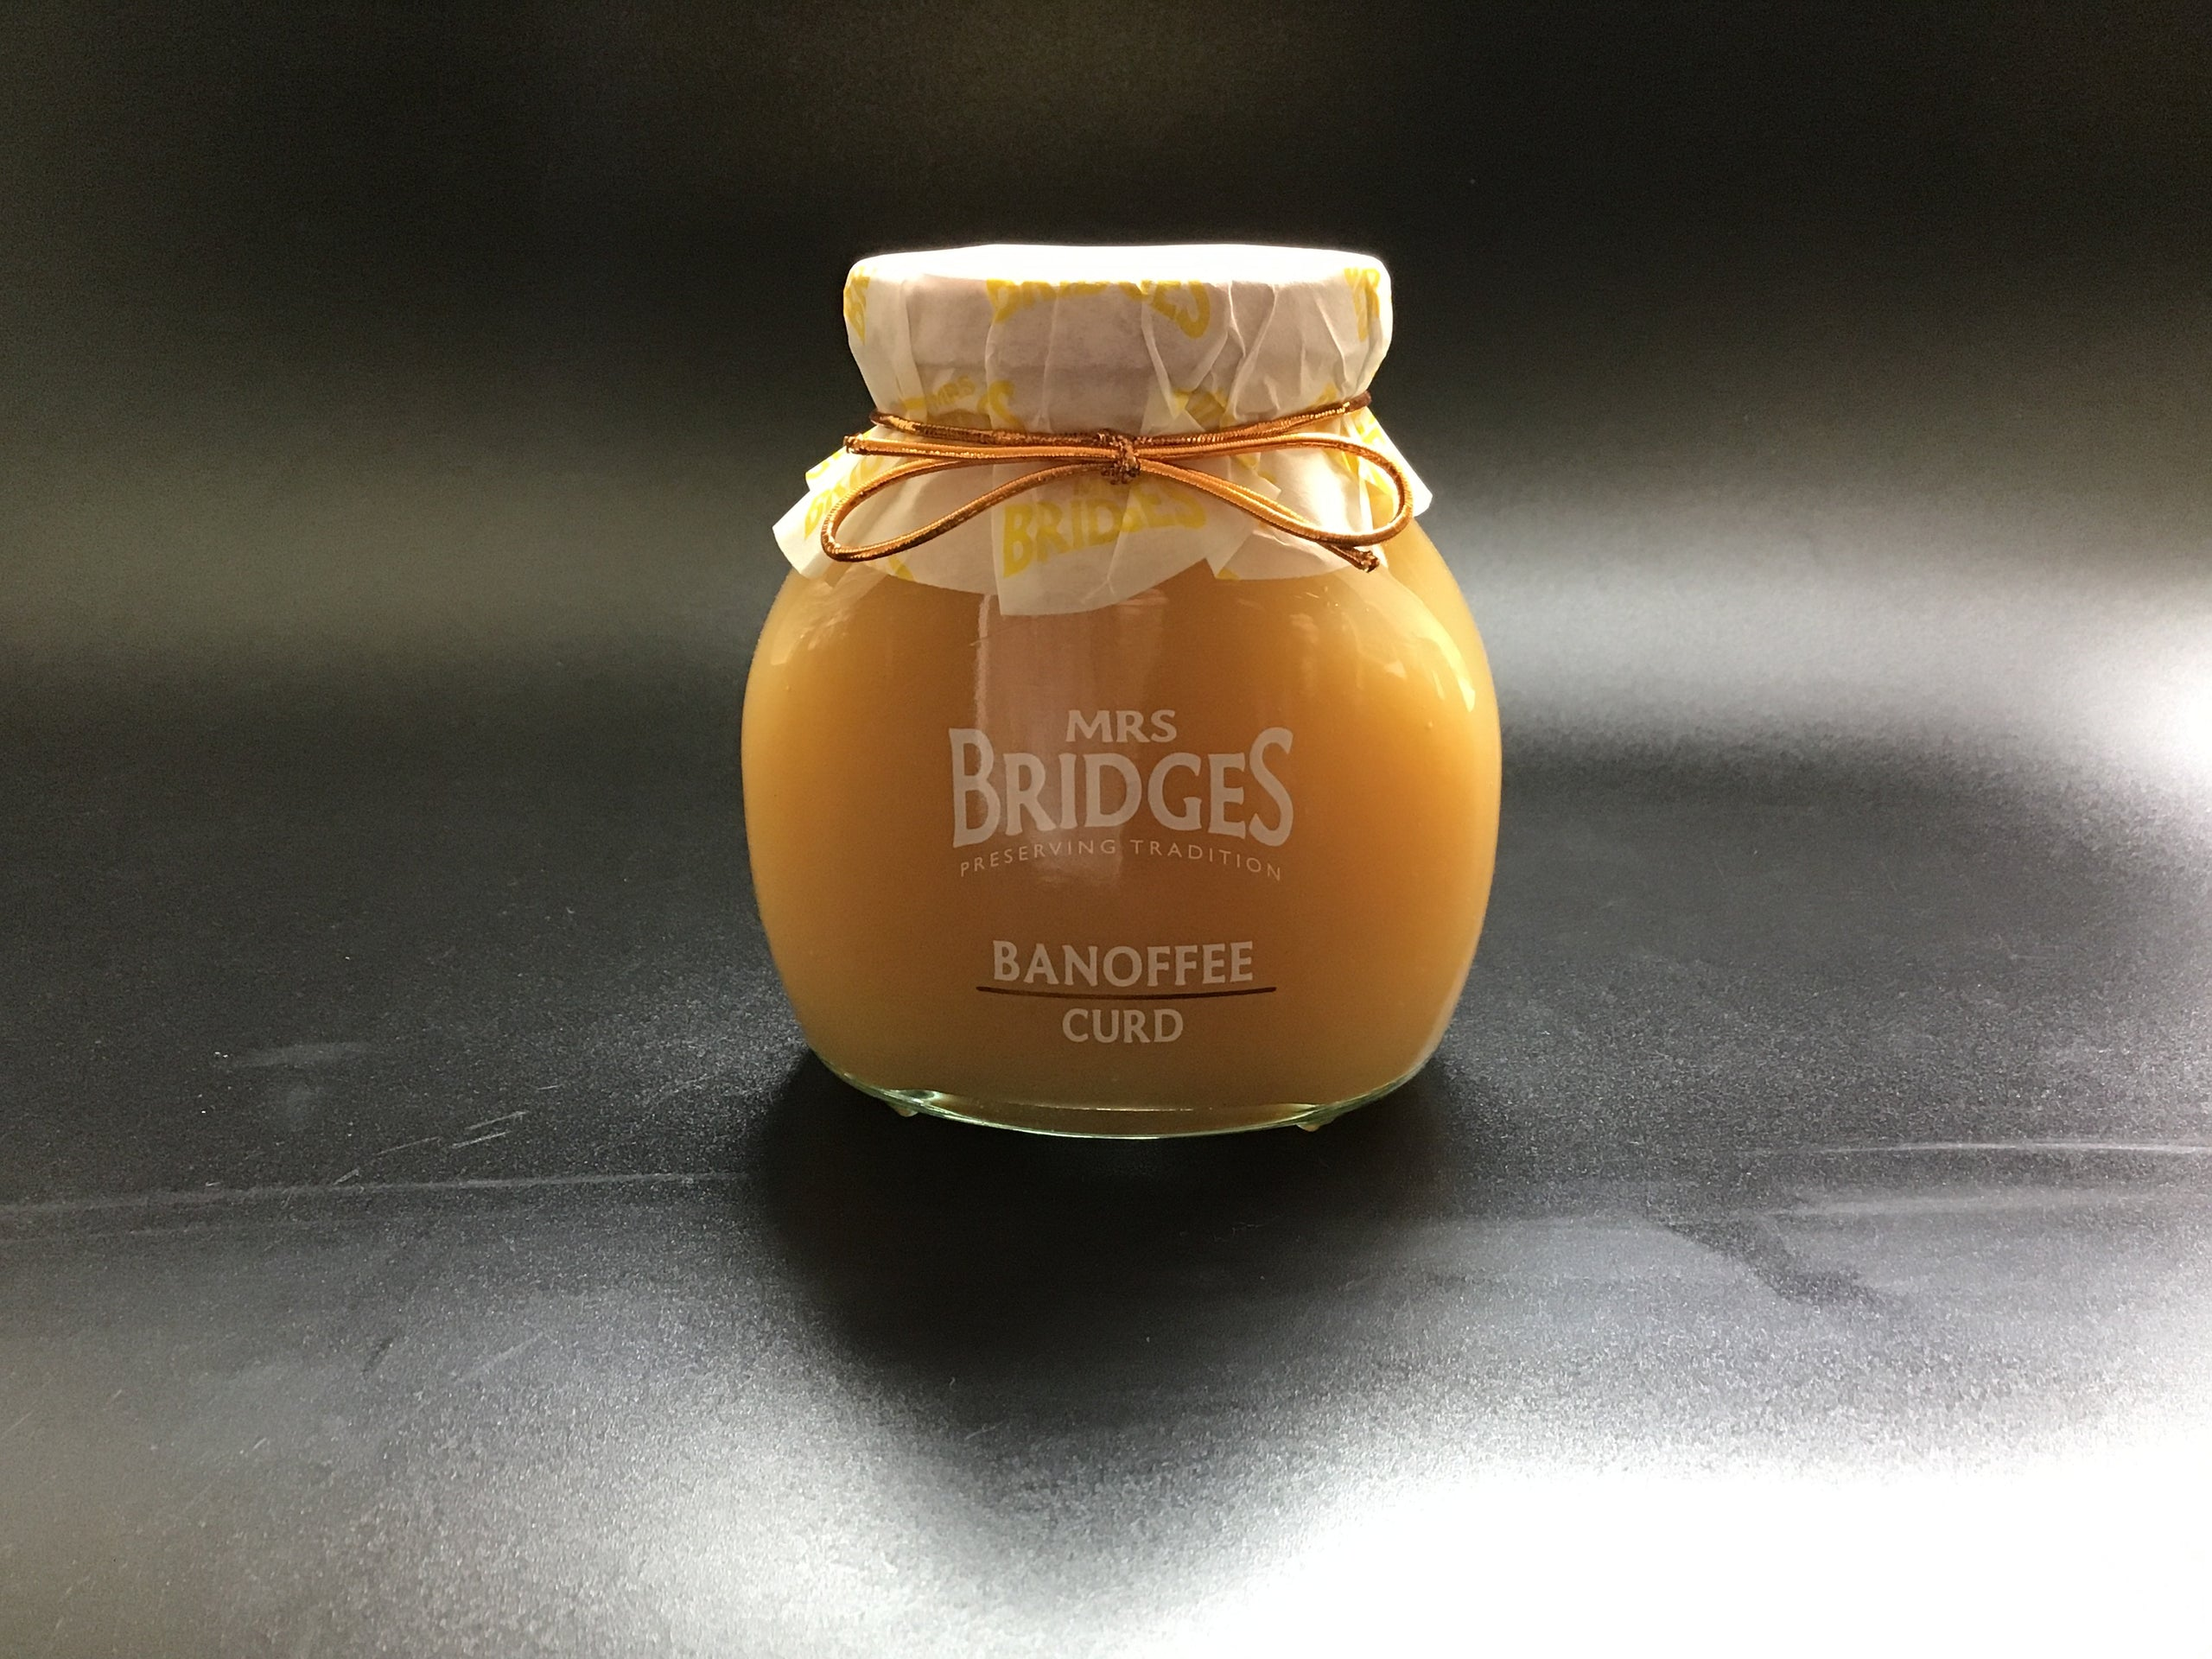 Mrs Bridges Banoffee Curd